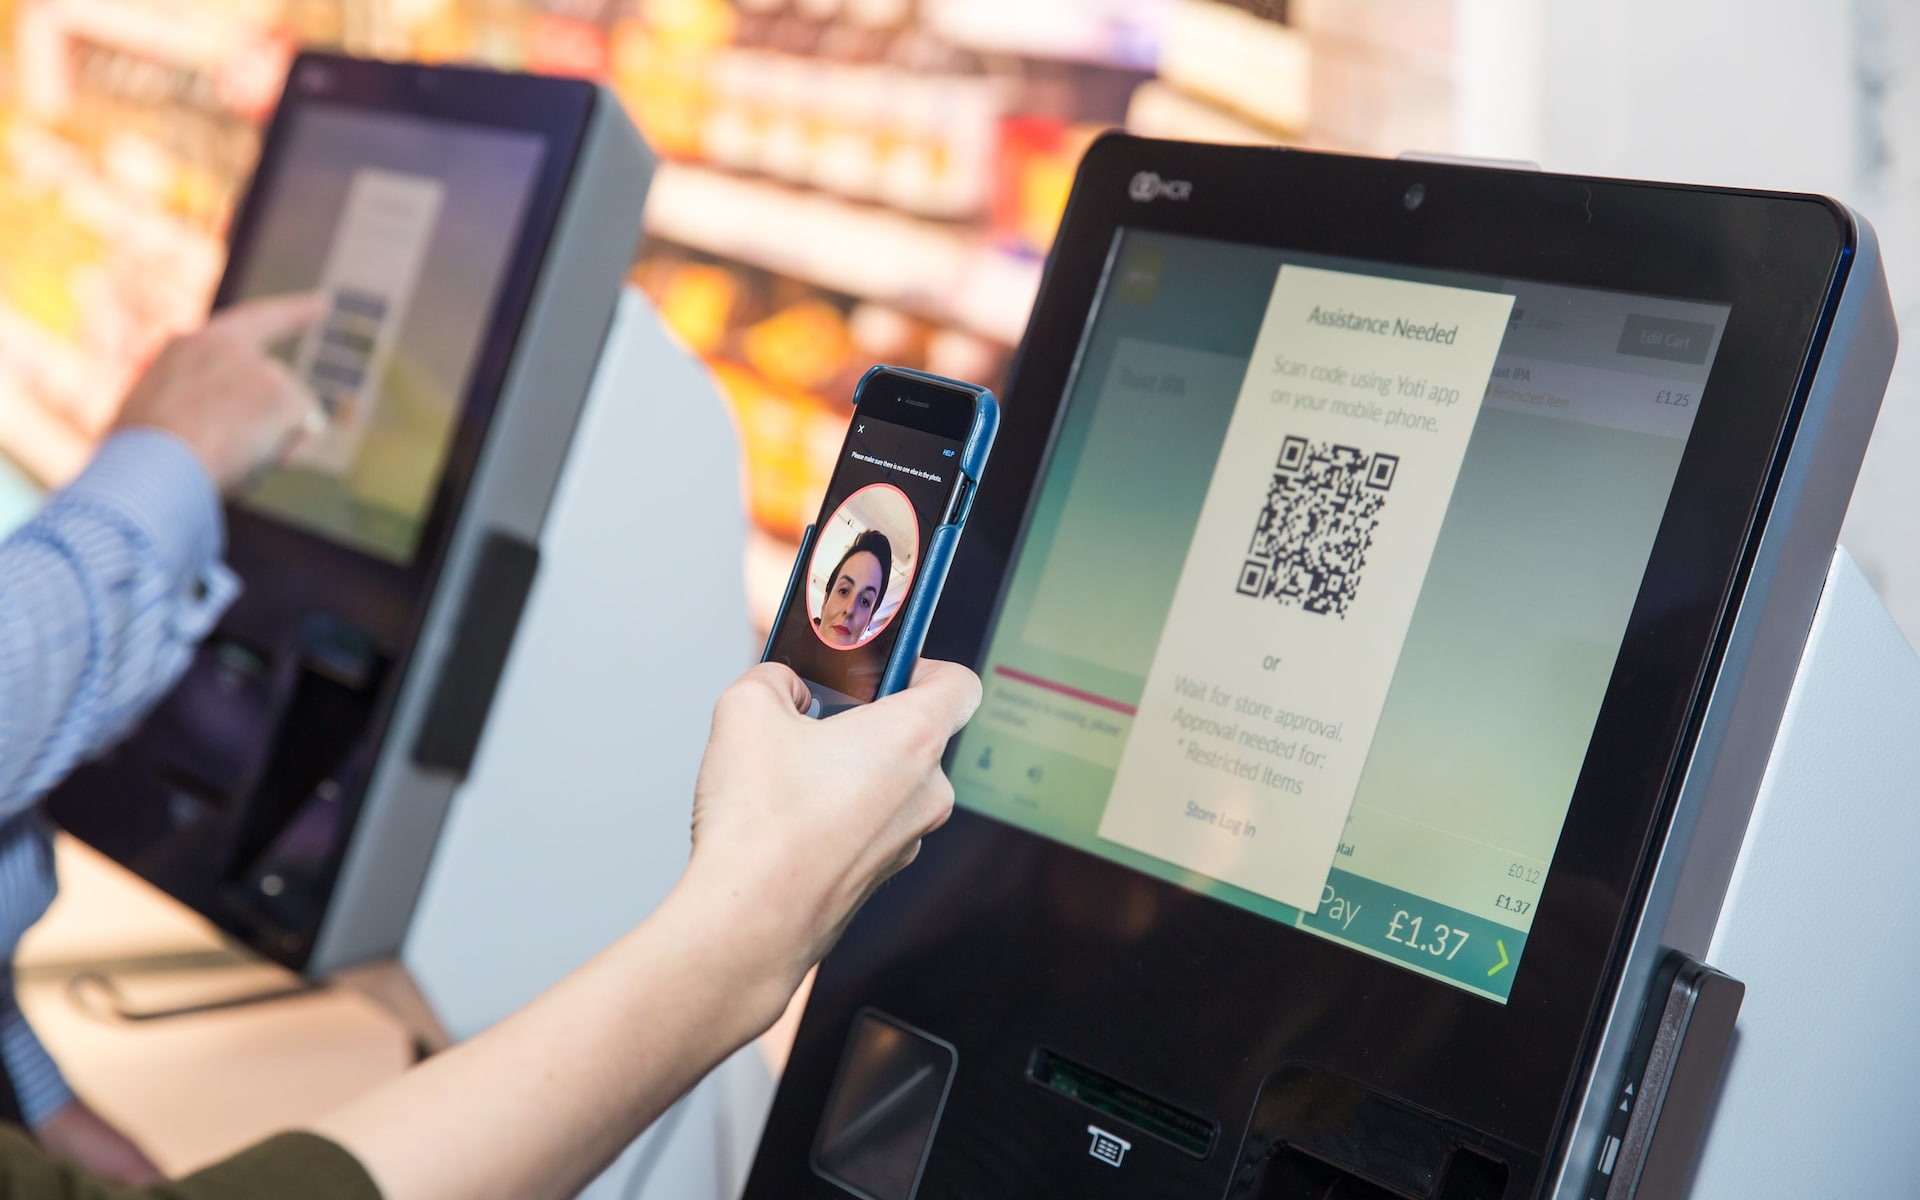 Supermarket self-service tills replace ID checks with facial recognition